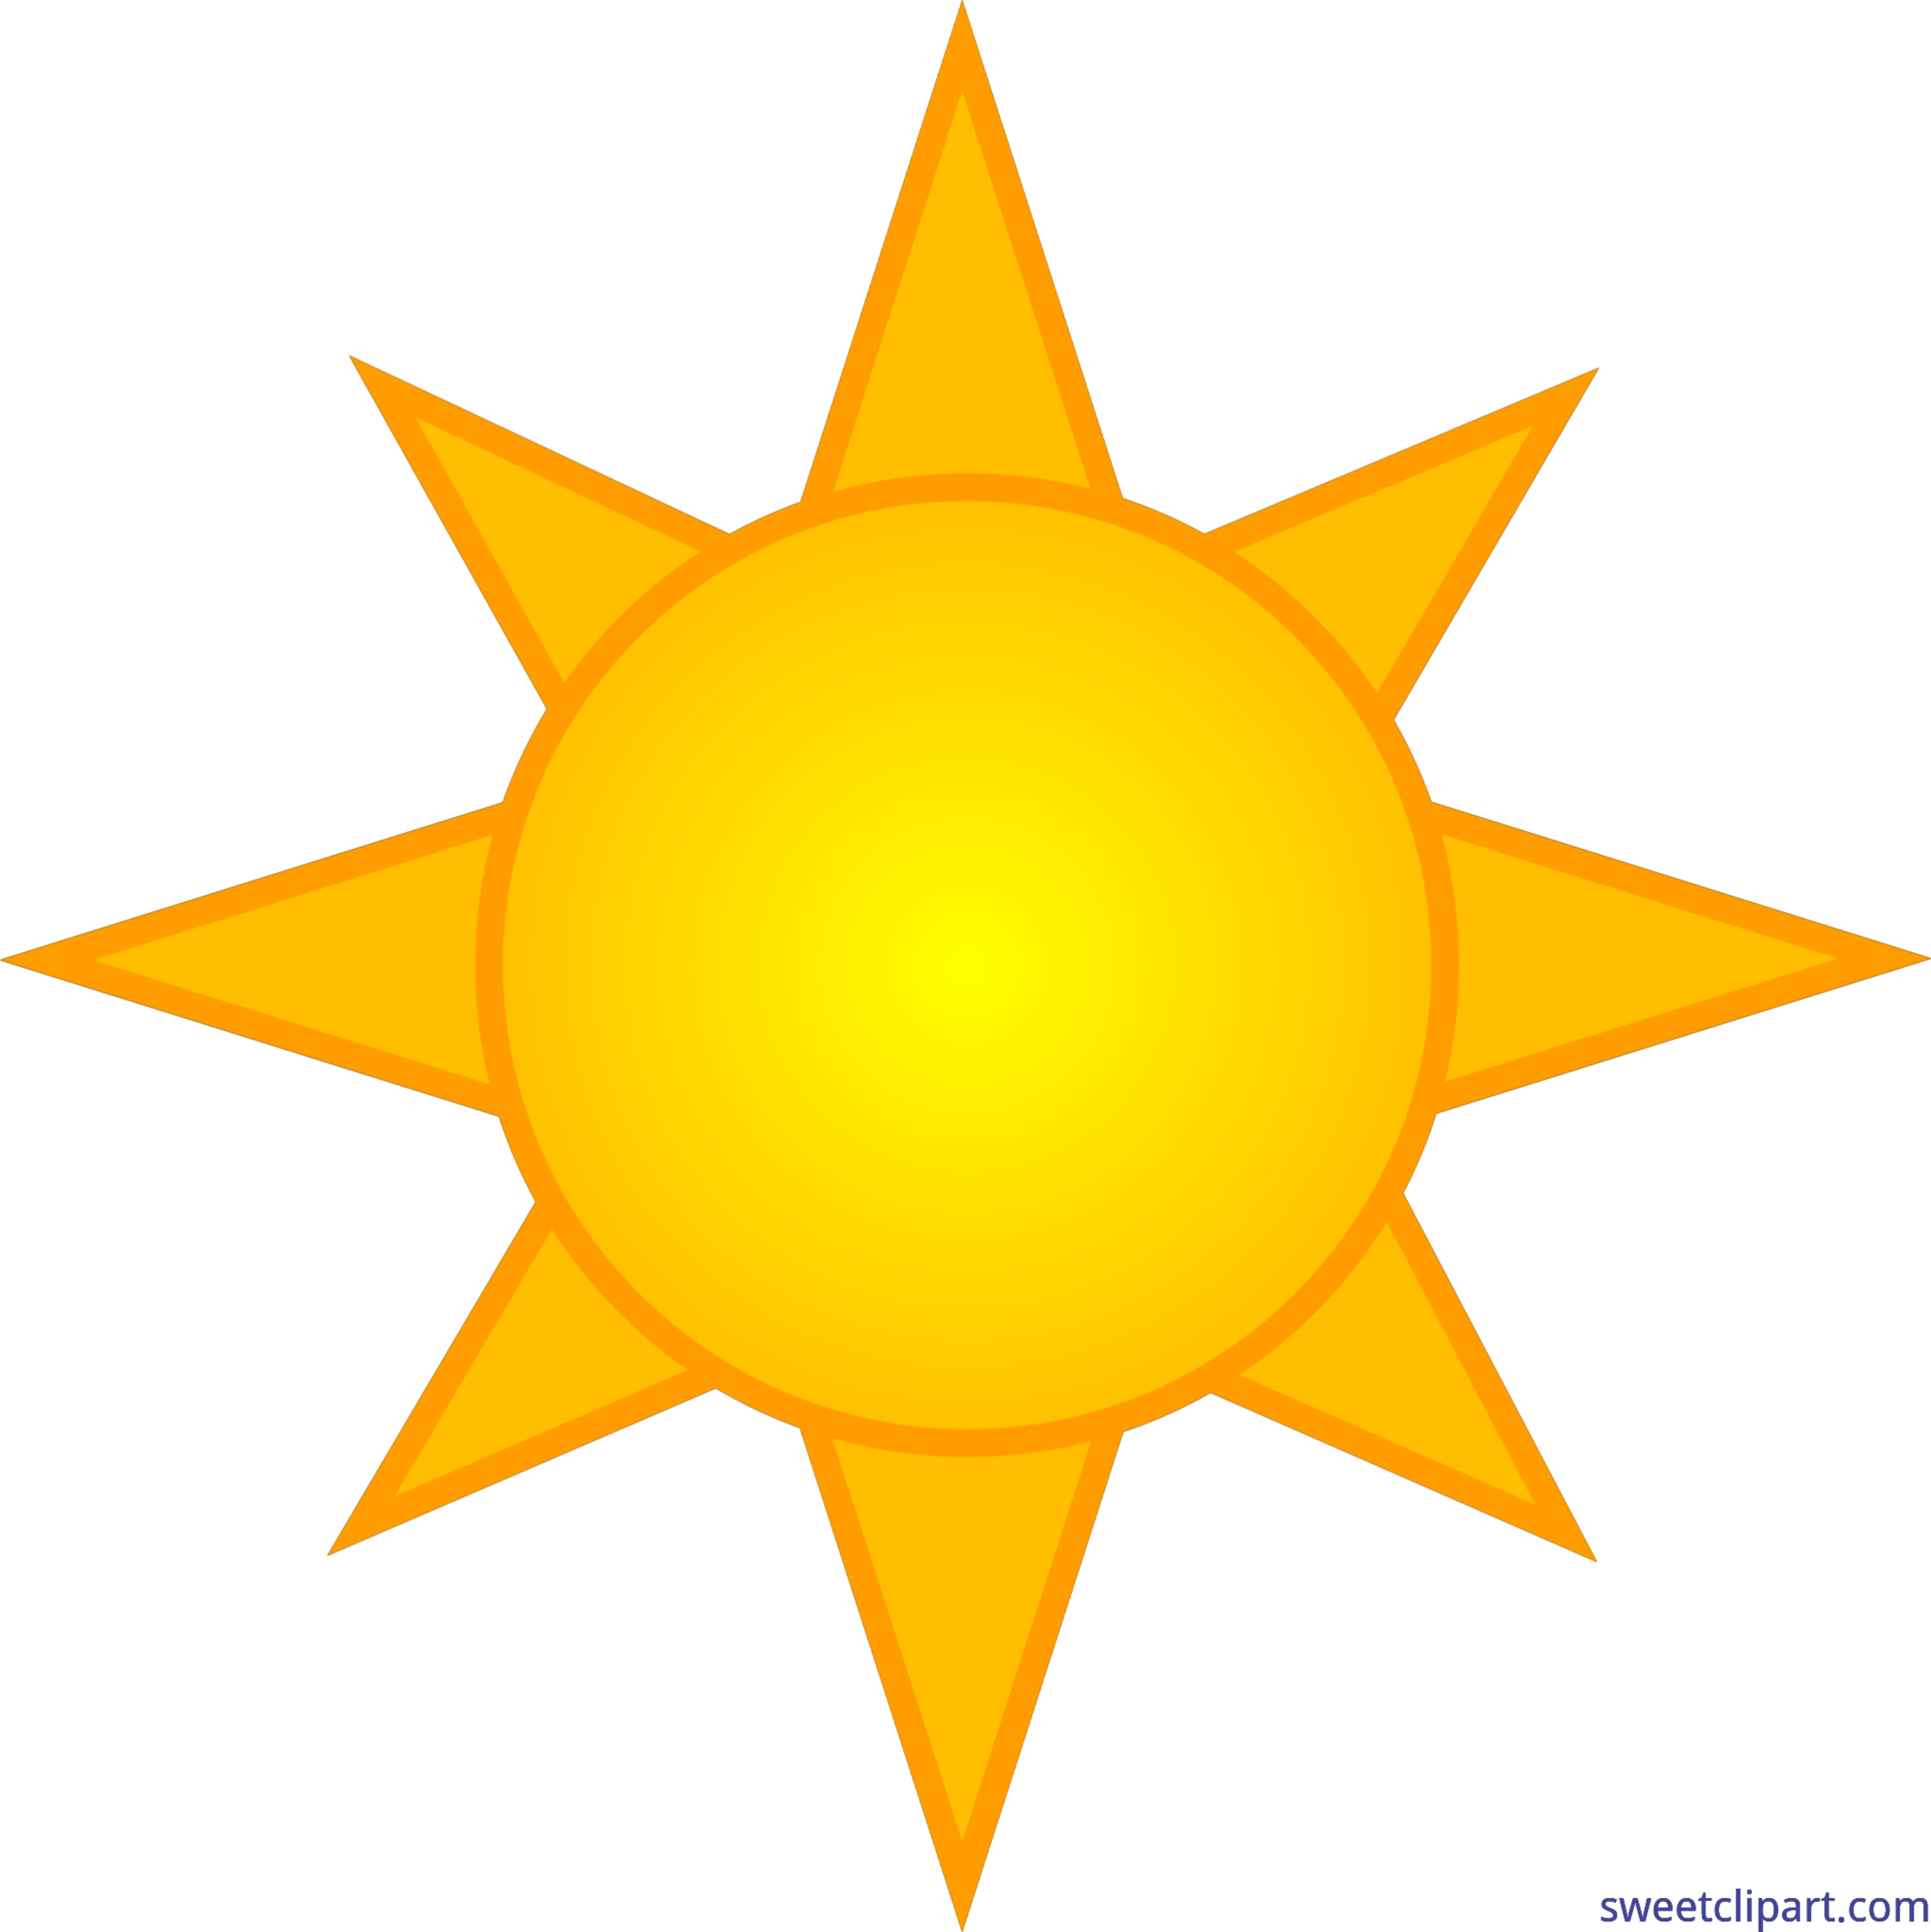 Sun picture clipart science graphic freeuse library Yellow Sun Symbol 6 Clip Art - Sweet Clip Art graphic freeuse library